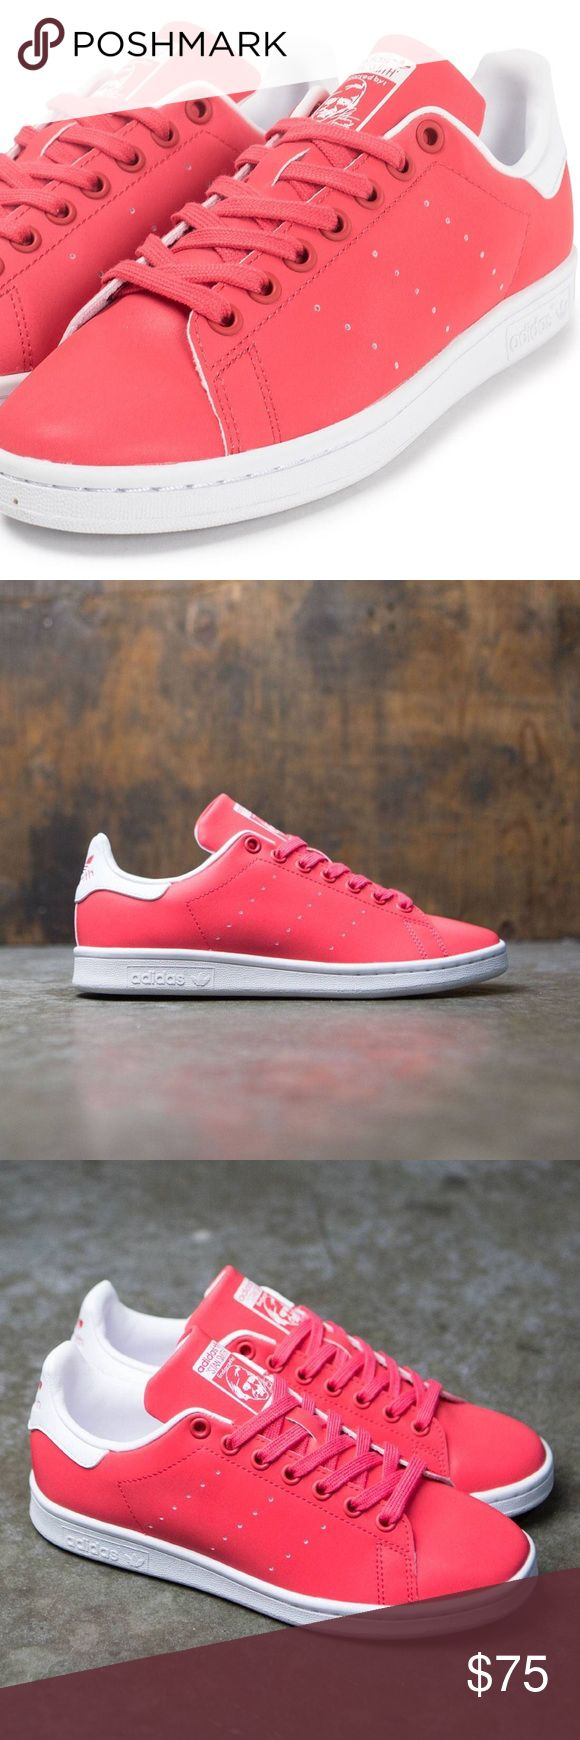 Adidas Stan Smith in coral / pink - size 8 - NIB!! Adidas Stan Smith sneakers in coral/pink. Size 8. Brand new in box!! A legendary court shoe updated with a modern twist. Full grain leather upper. Perforated 3-stripe detail.  🚫 Trades  🚫 Offline transactions  💛 Offers  💛 Bundles (10% off 2+)  💛 Smoke-free home adidas Shoes Sneakers